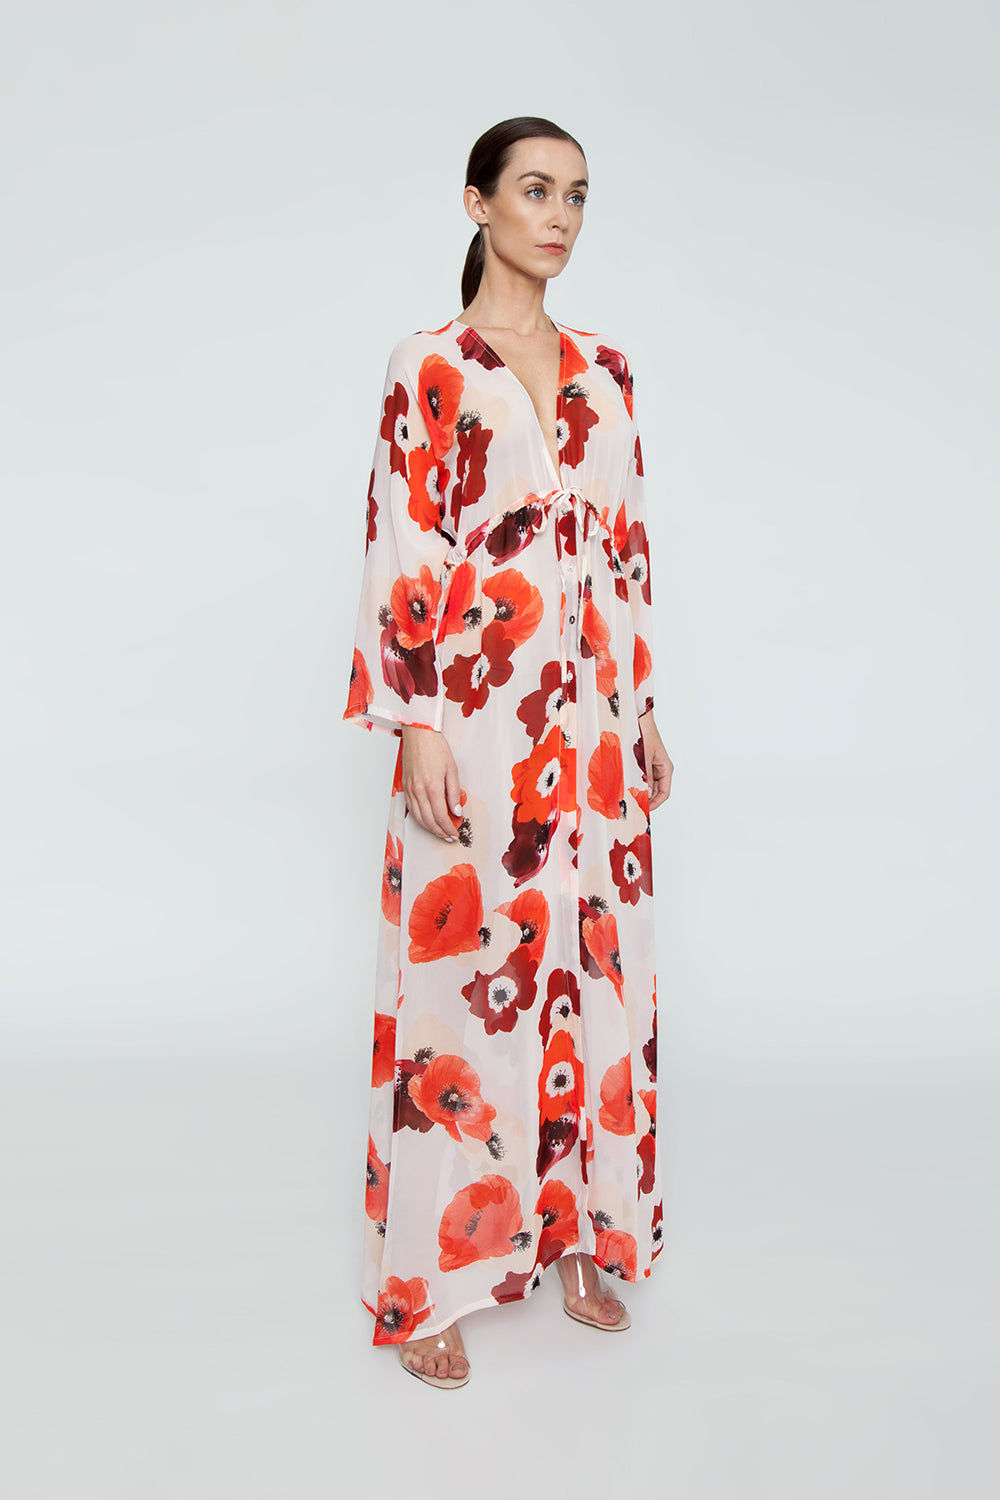 EVARAE Gela Open Kimono - Red Poppy Print Dress | Red Poppy Print| Evarae Gela Open Kimono - Red Poppy Print. Features:  100% Silk Georgette Slightly sheer Can be worn open or pulled in by adjustable cords at the waist Side View